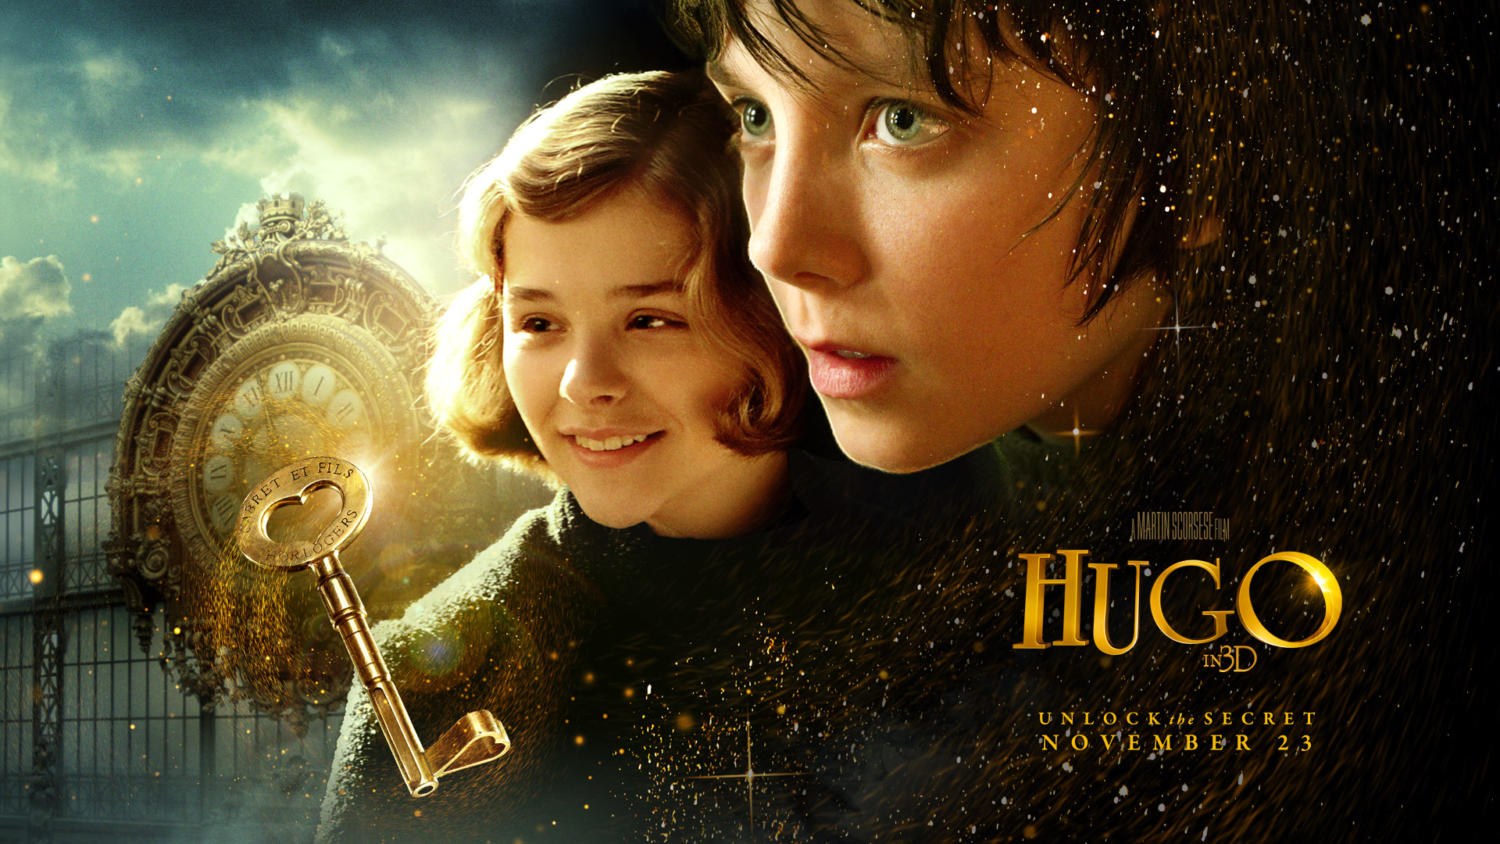 Main characters Hugo and Isabelle